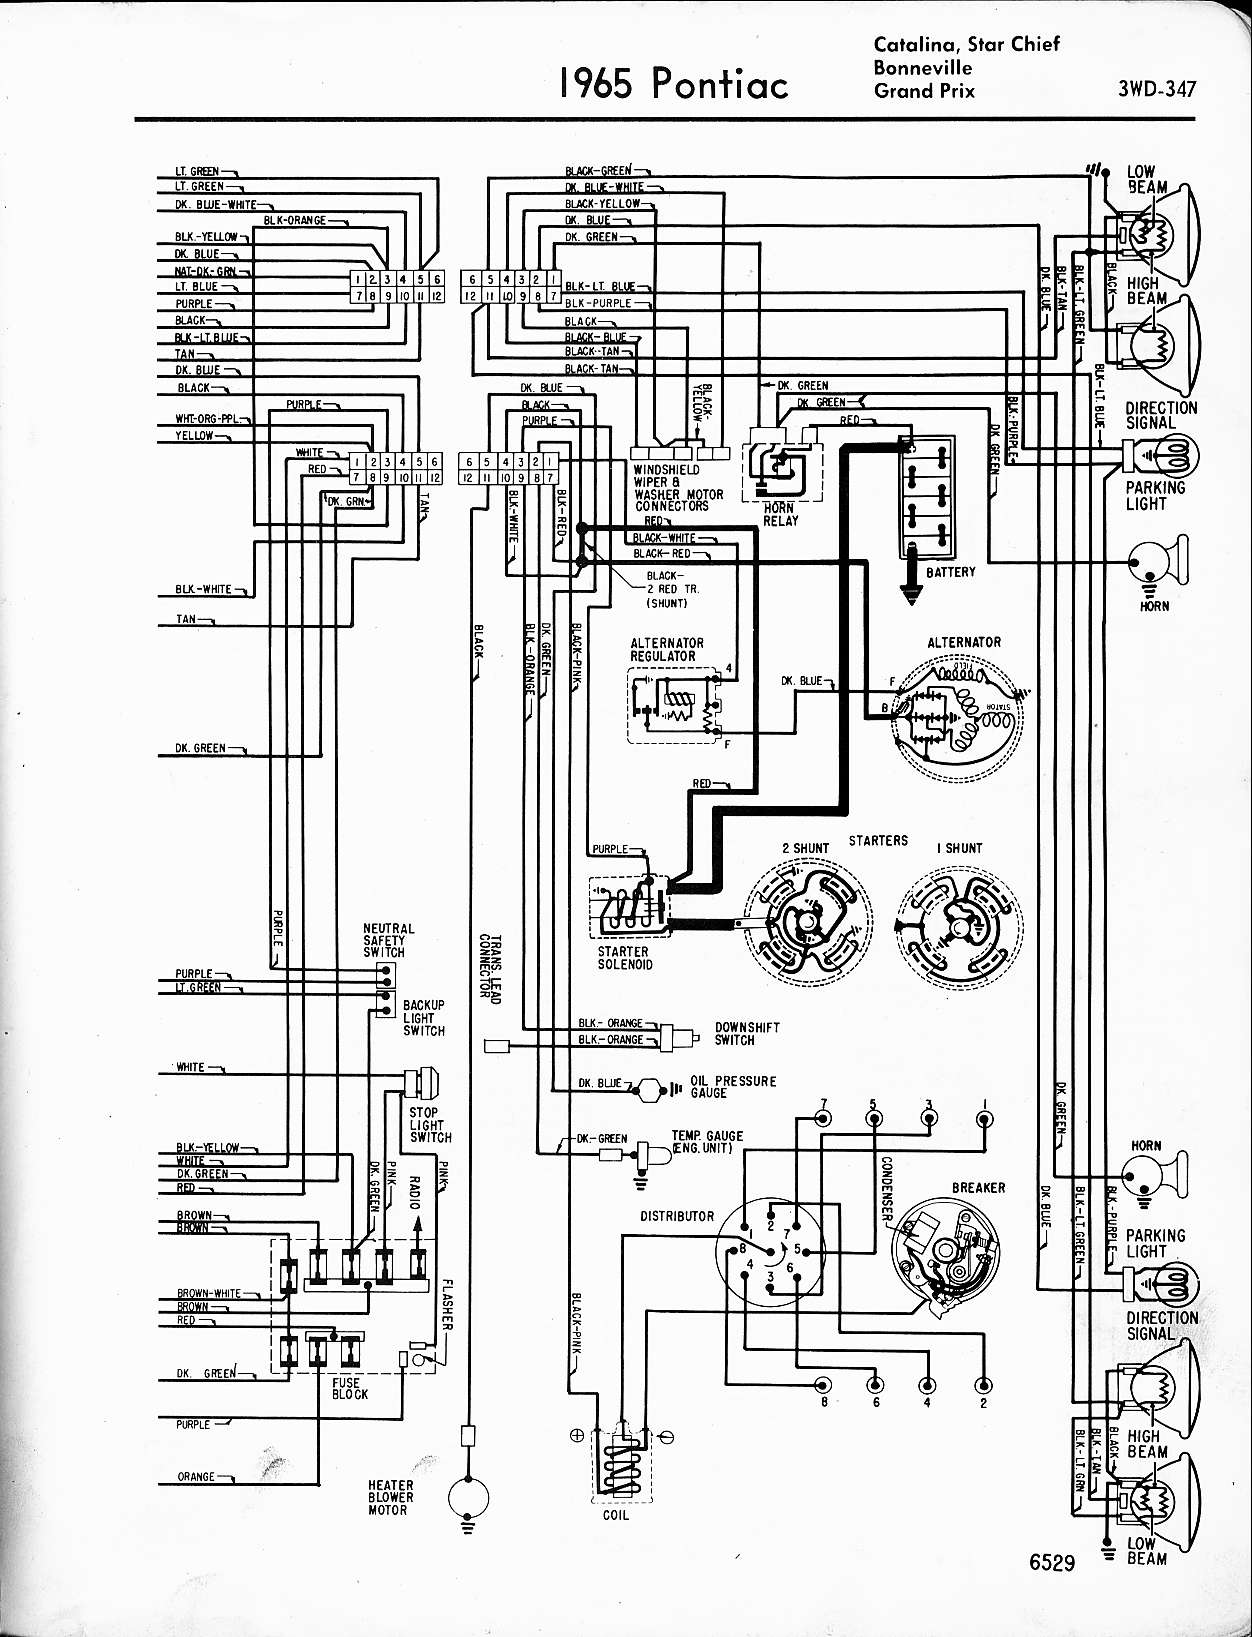 circuit drawings and wiring diagrams